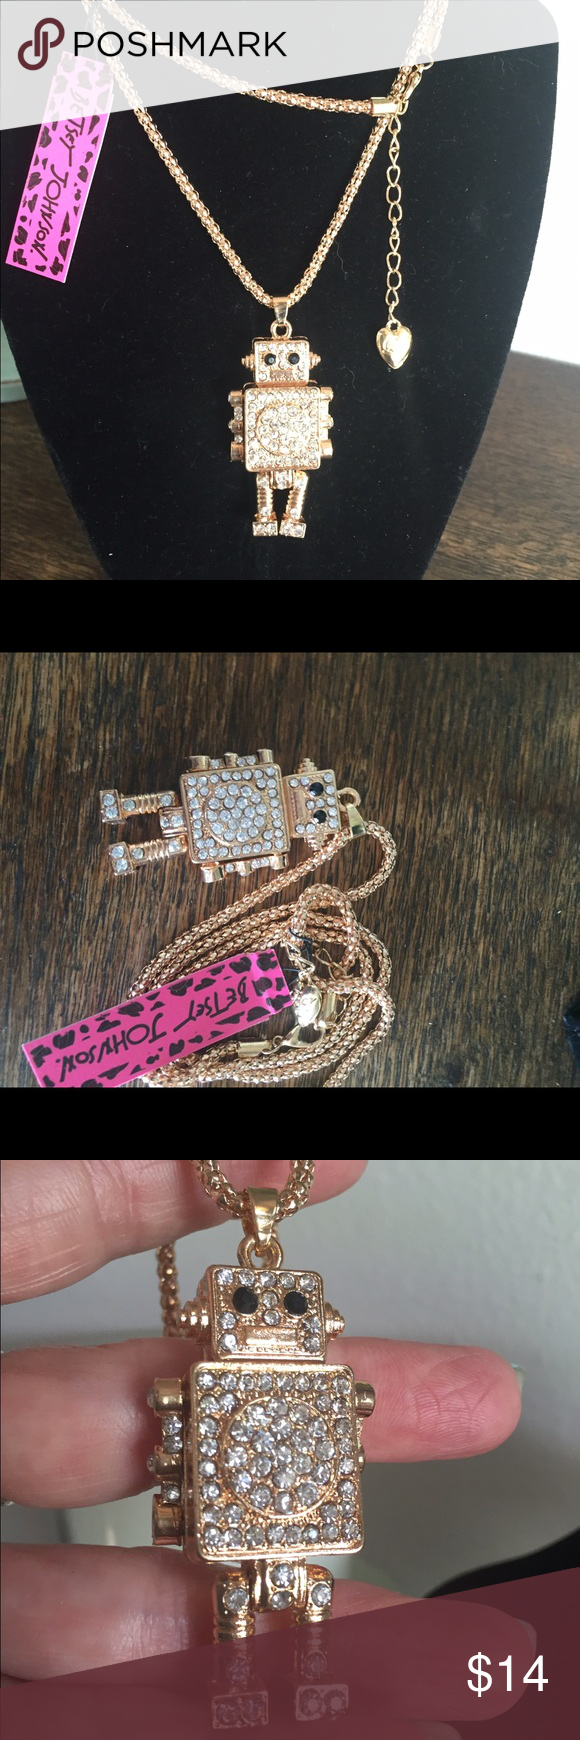 Cute robot necklace Goldtone robot with clear crystals on this cute necklace.  The legs & arms move back & forth. Betsey Johnson Jewelry Necklaces